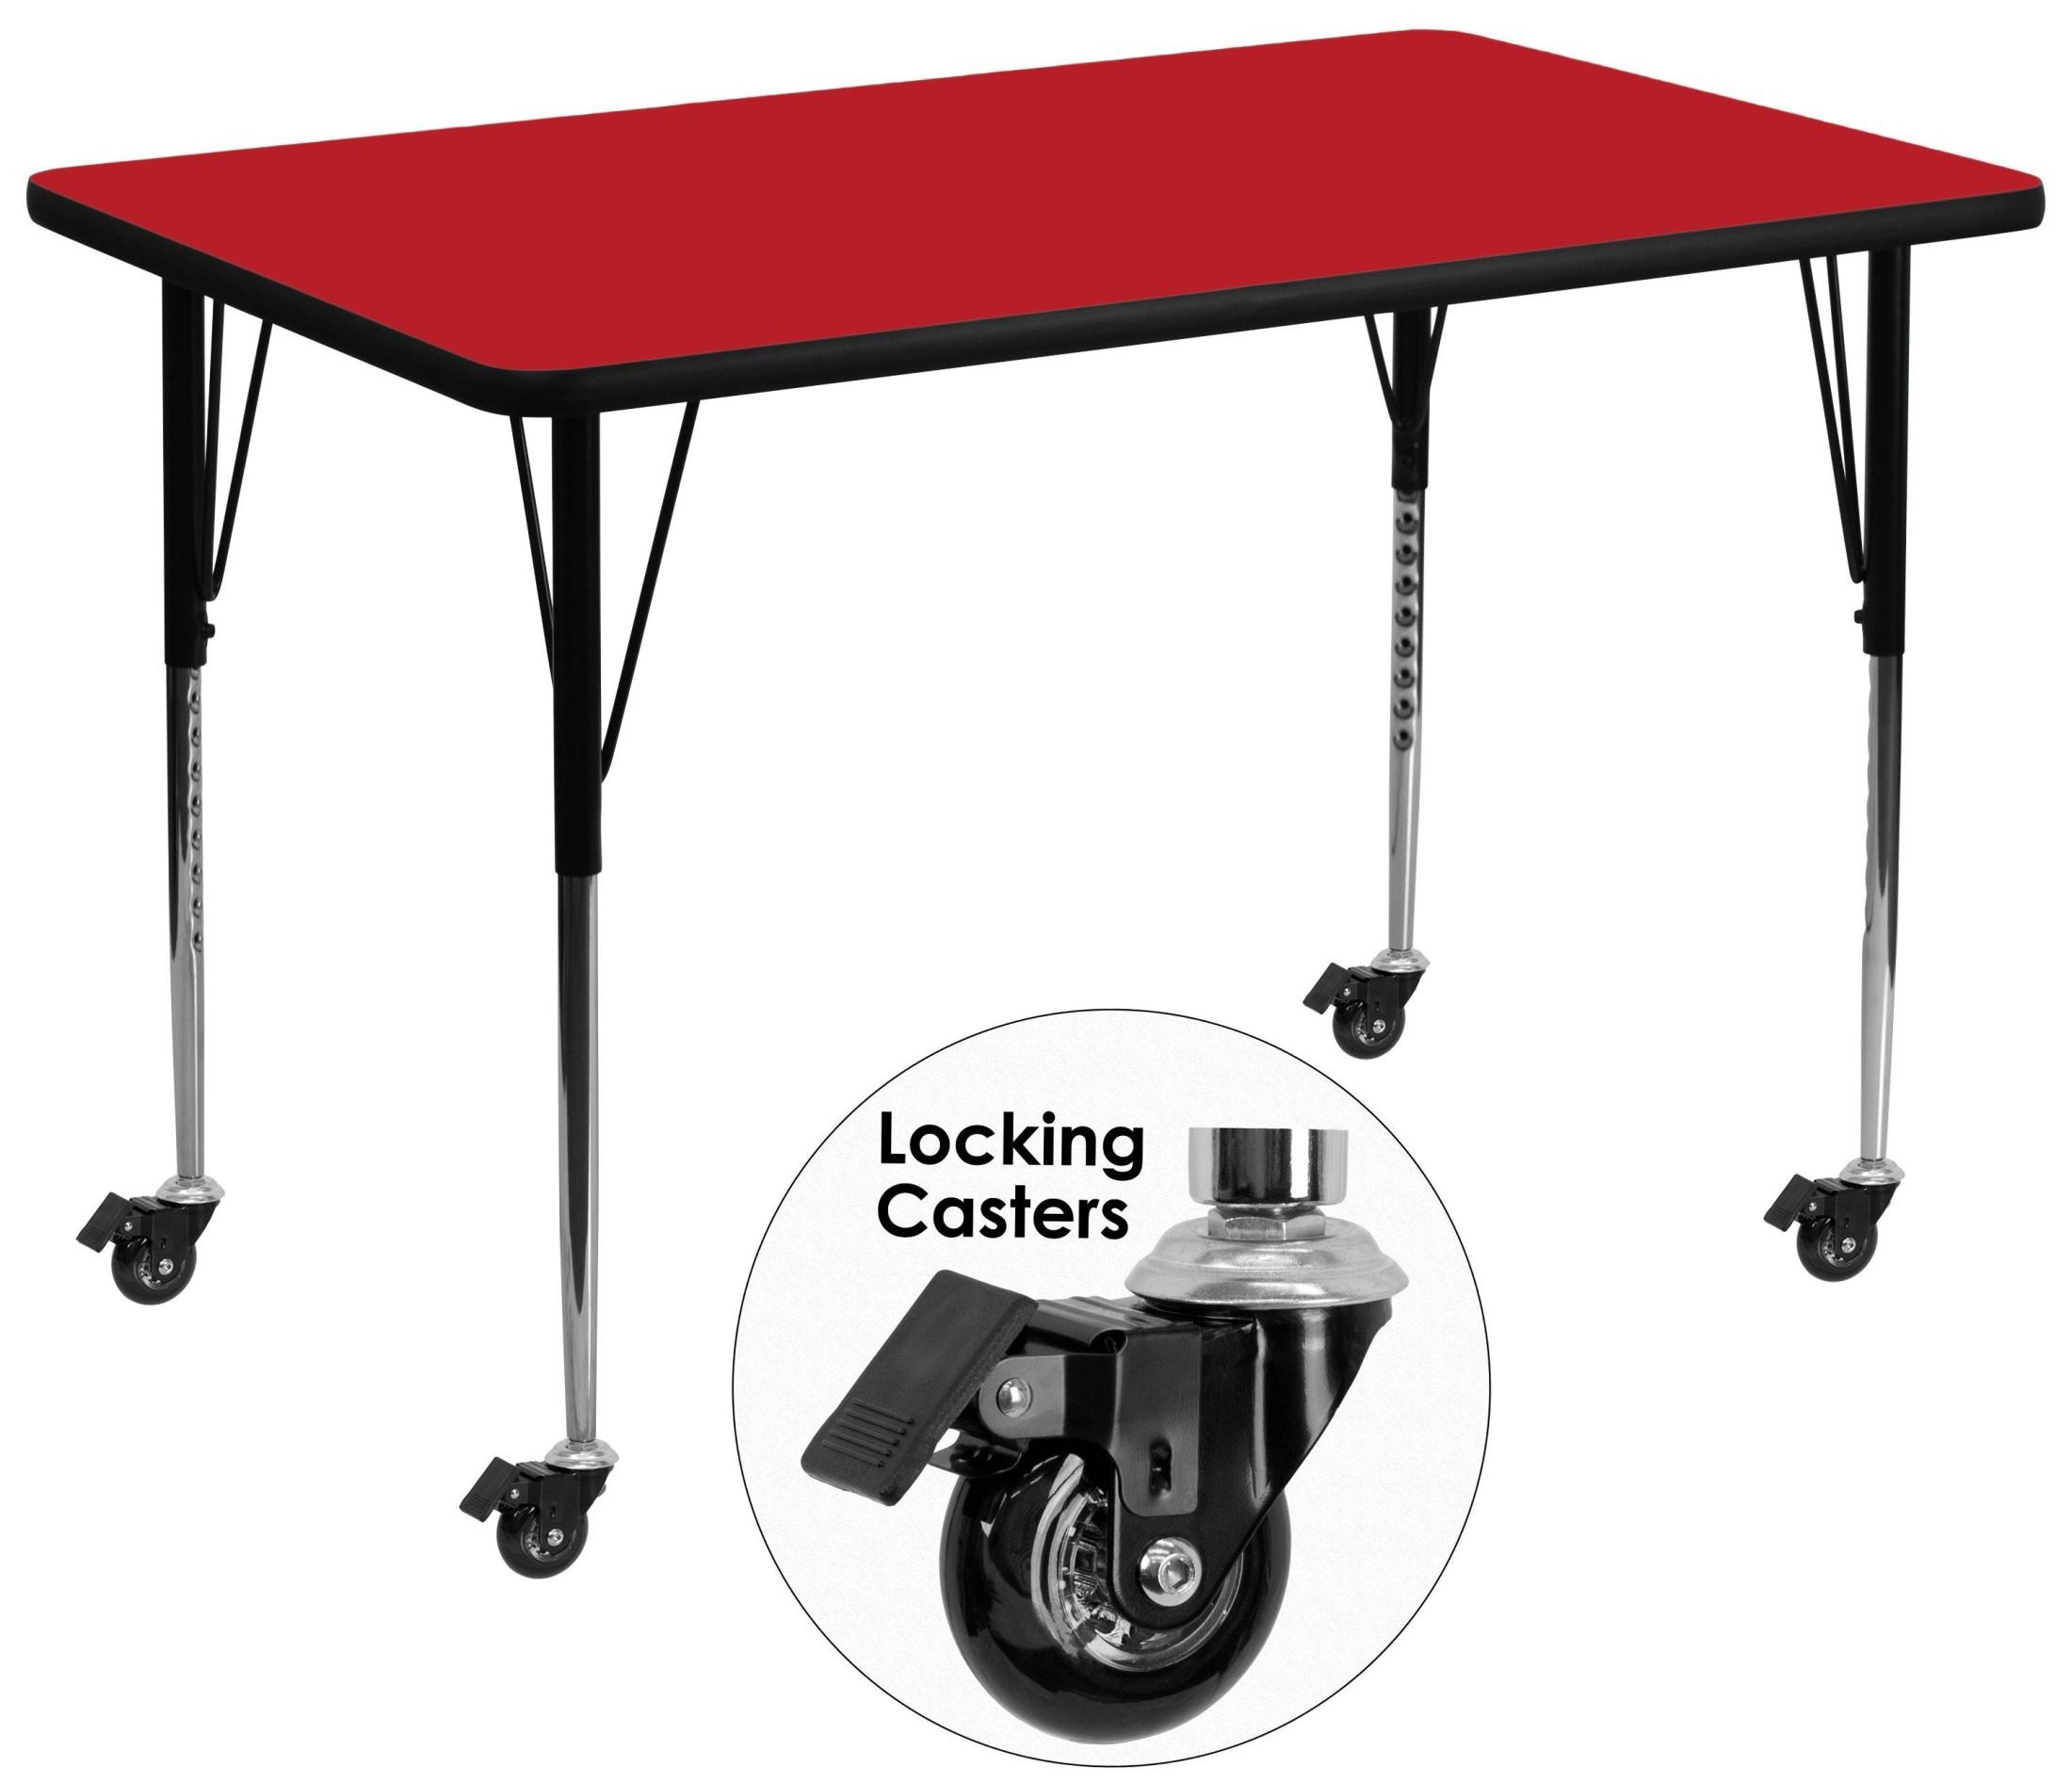 Adjustable Height Activity Table Mobile 36 Quotw X 72 Quotl Rectangular Adjustable Height Red